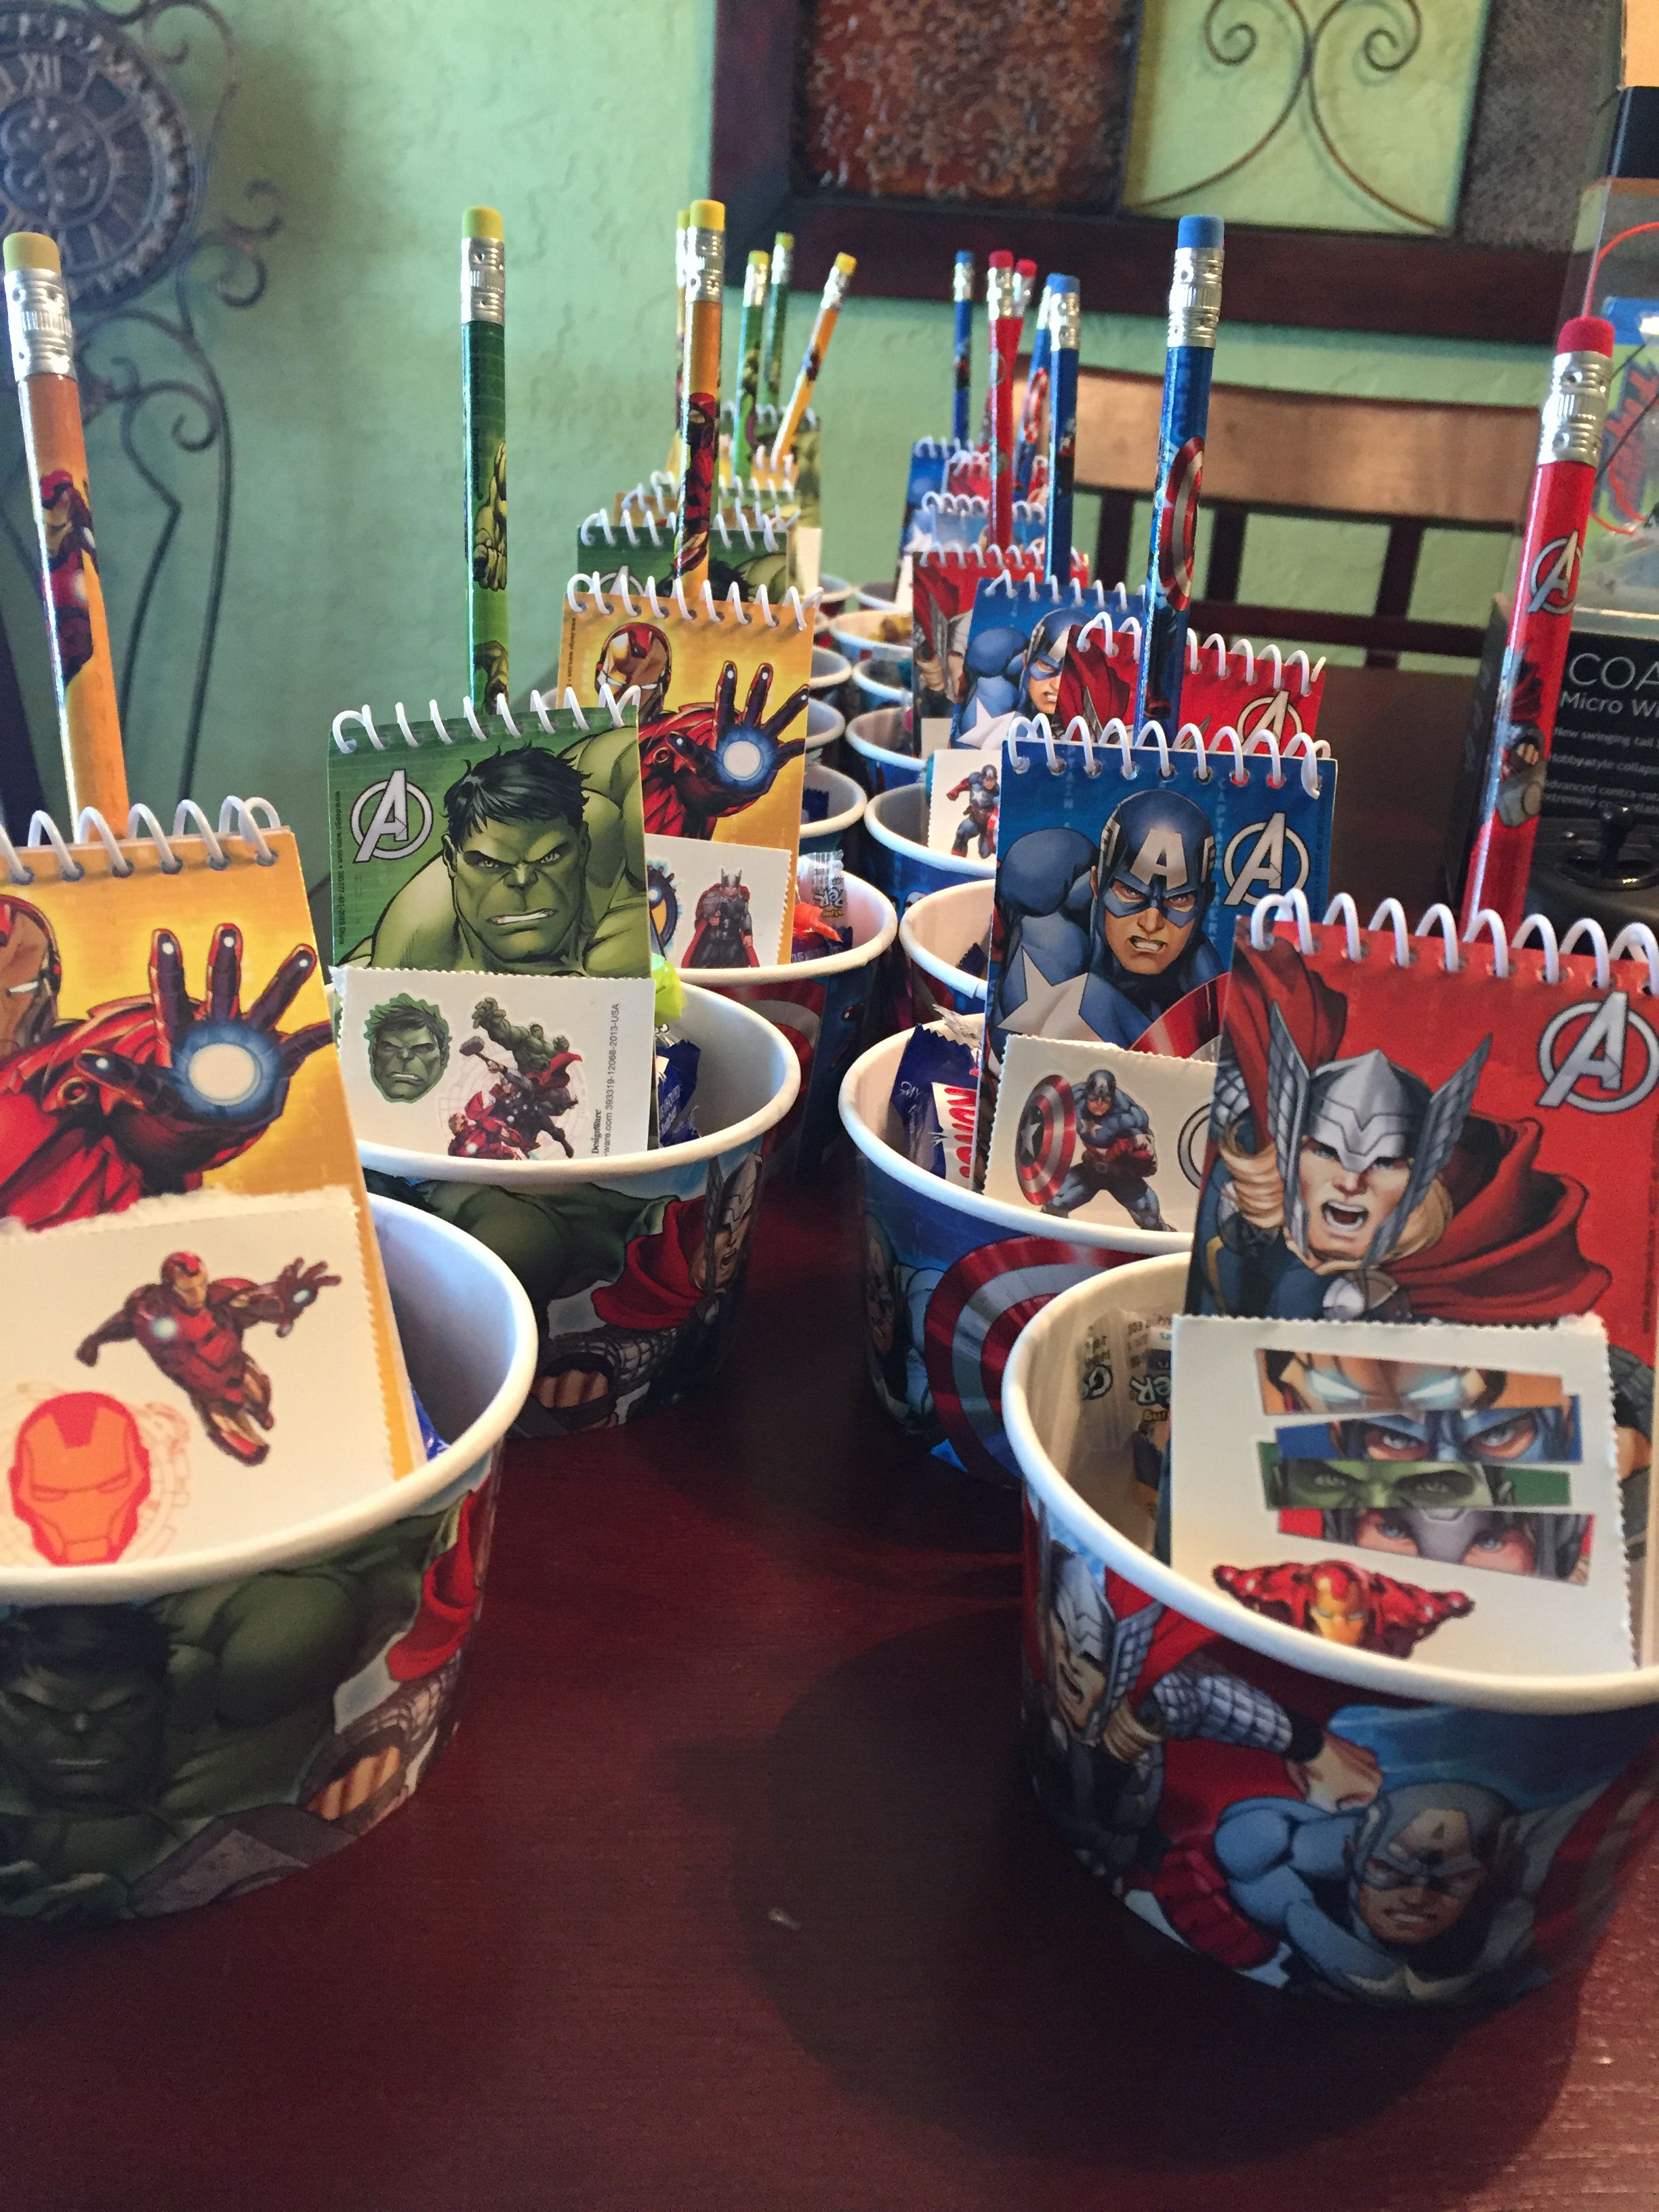 Goodie bags for an Avengers party | Gift Ideas in 2019 | Birthday